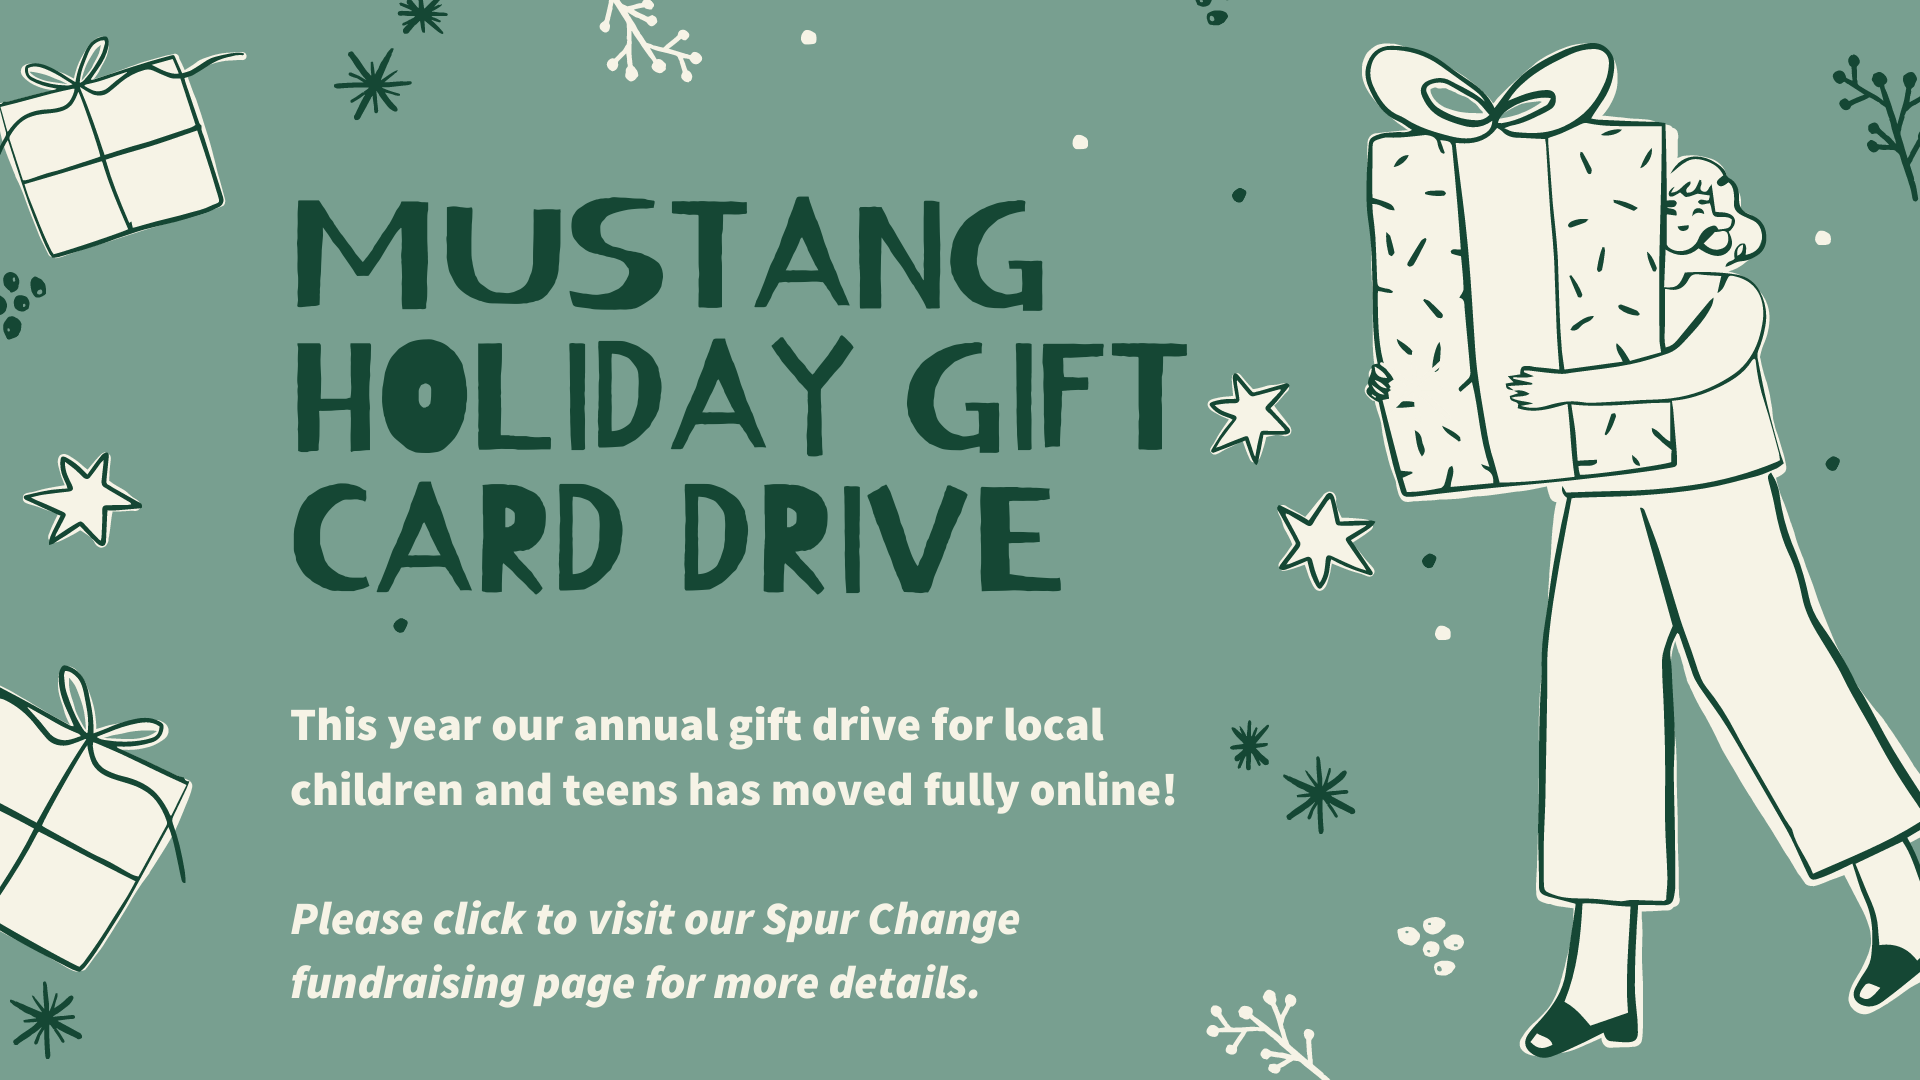 Donate online for our Holiday Gift Drive which has moved to be a fully online fundraiser at Spur Change.com